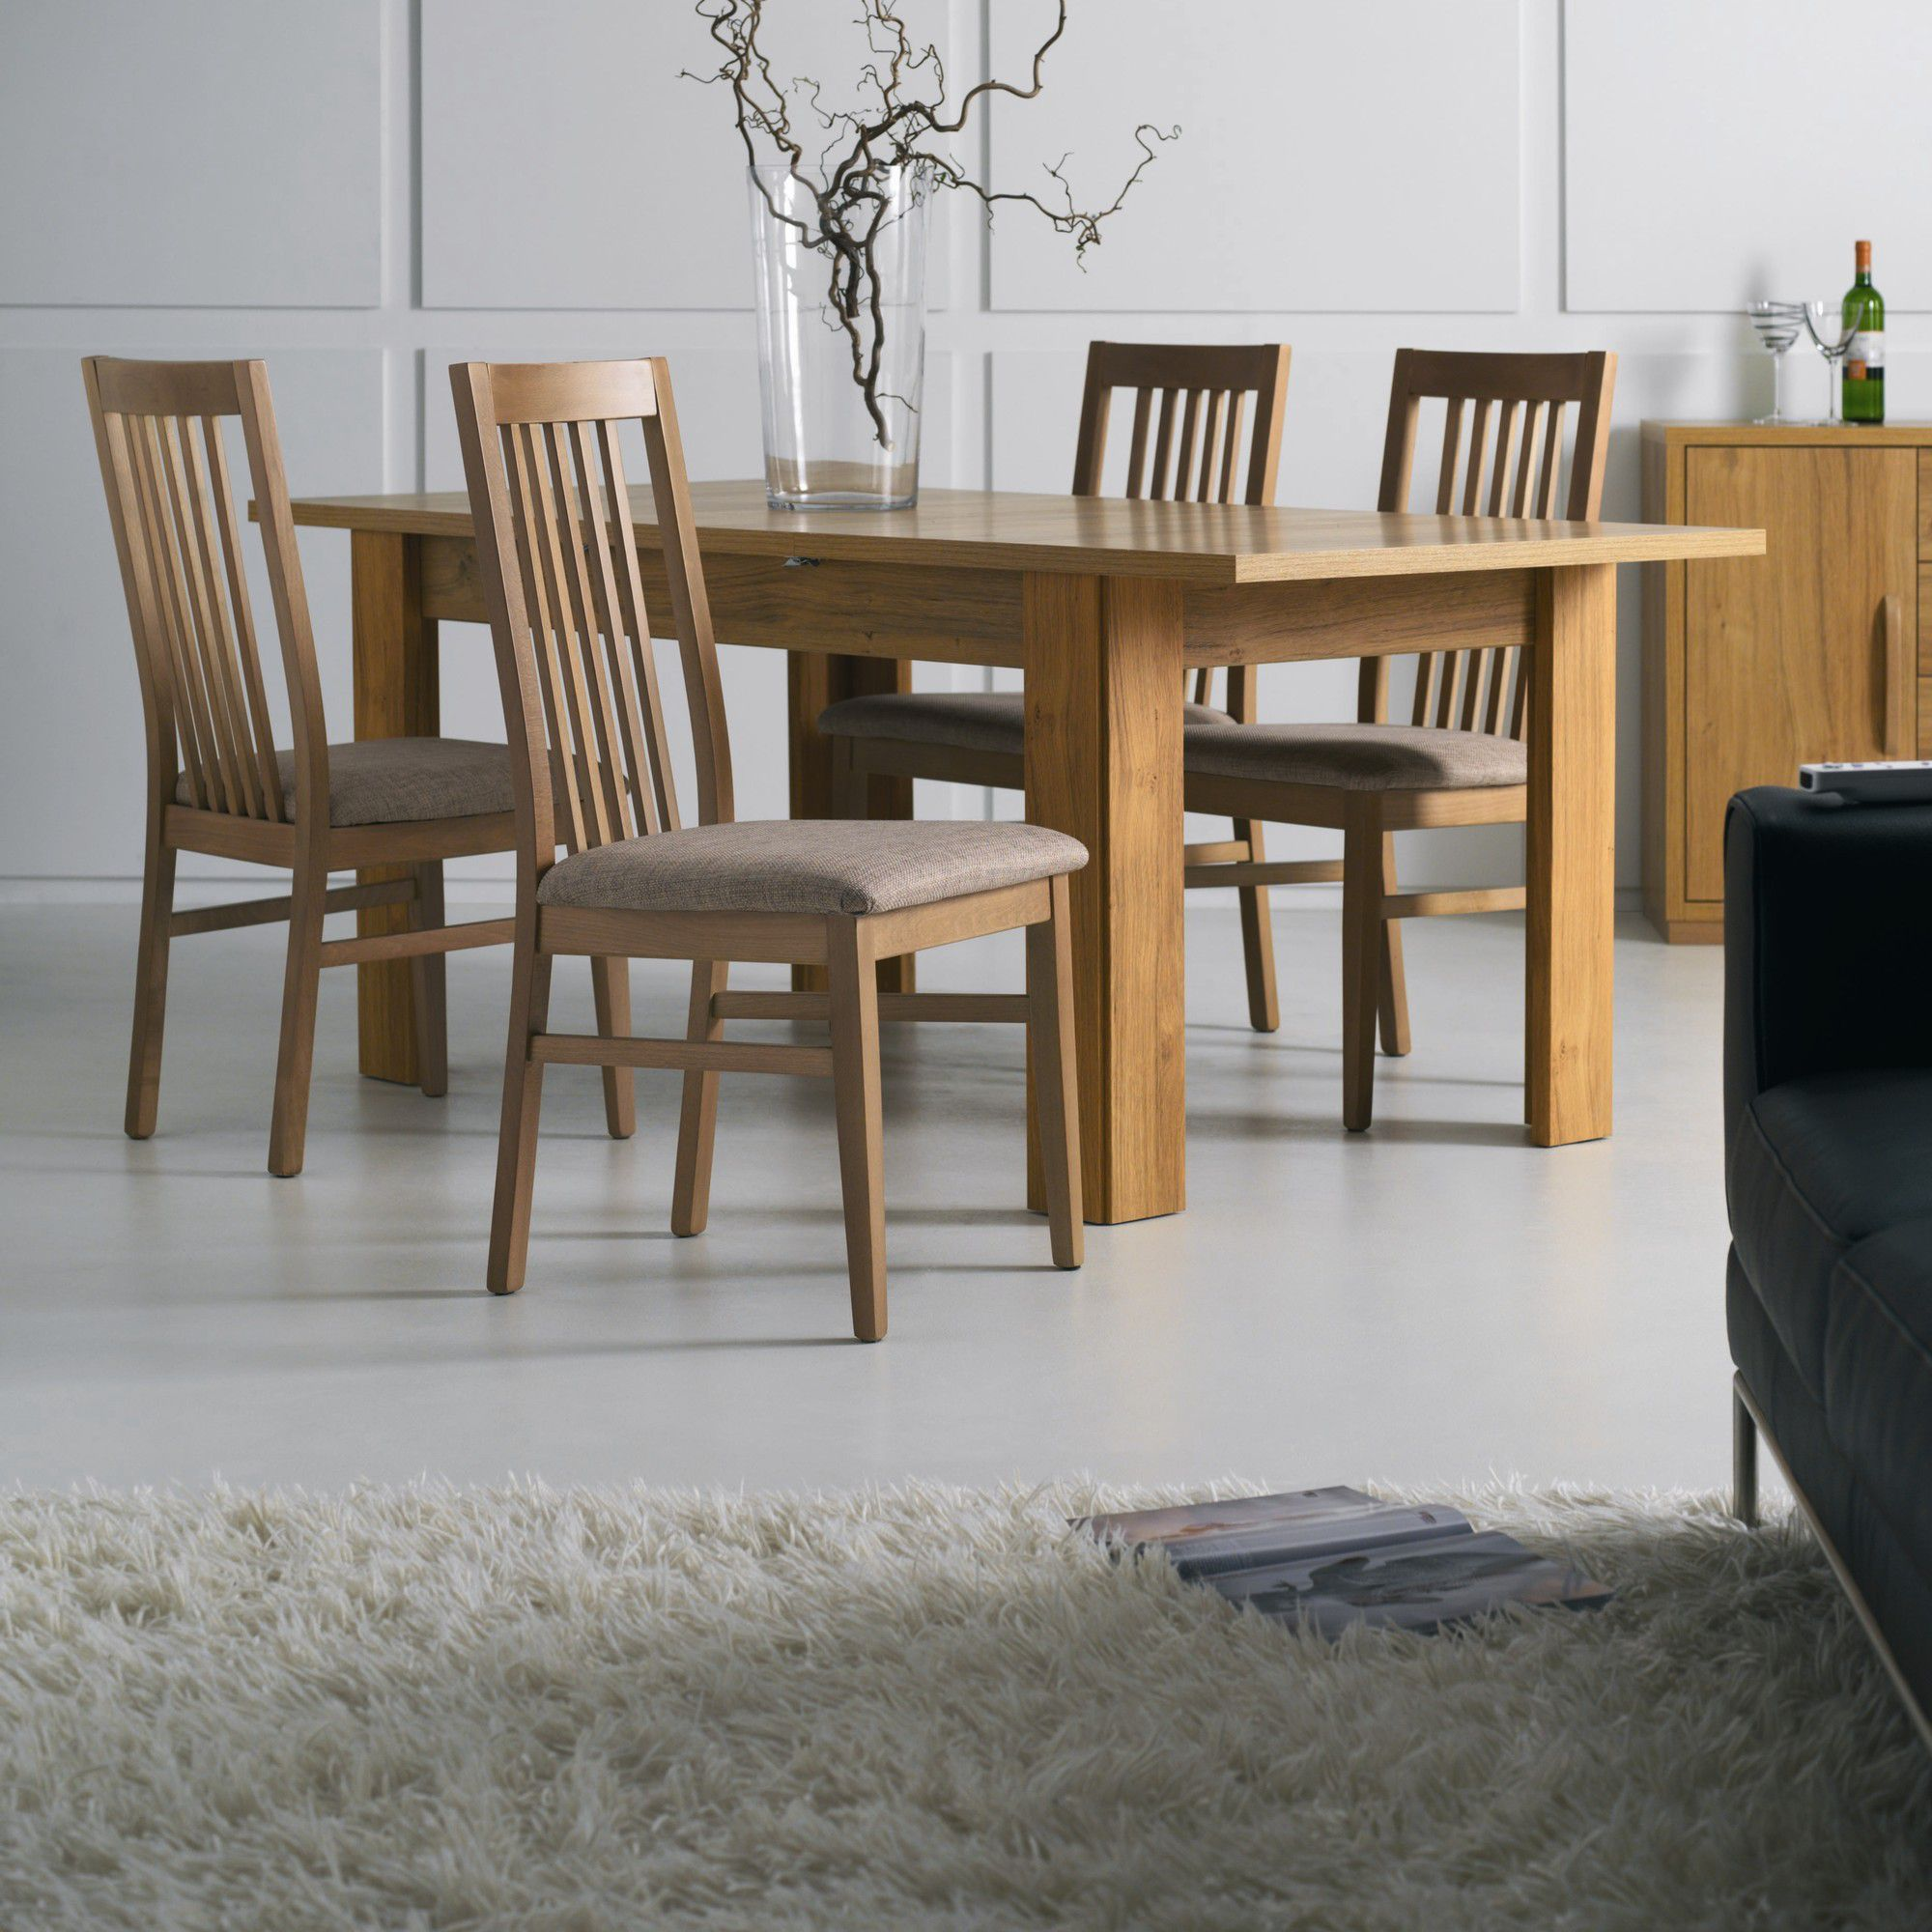 Caxton Strand Dining Set with 4 Slatted Back Dining Chairs in Oak - Mushroom at Tesco Direct